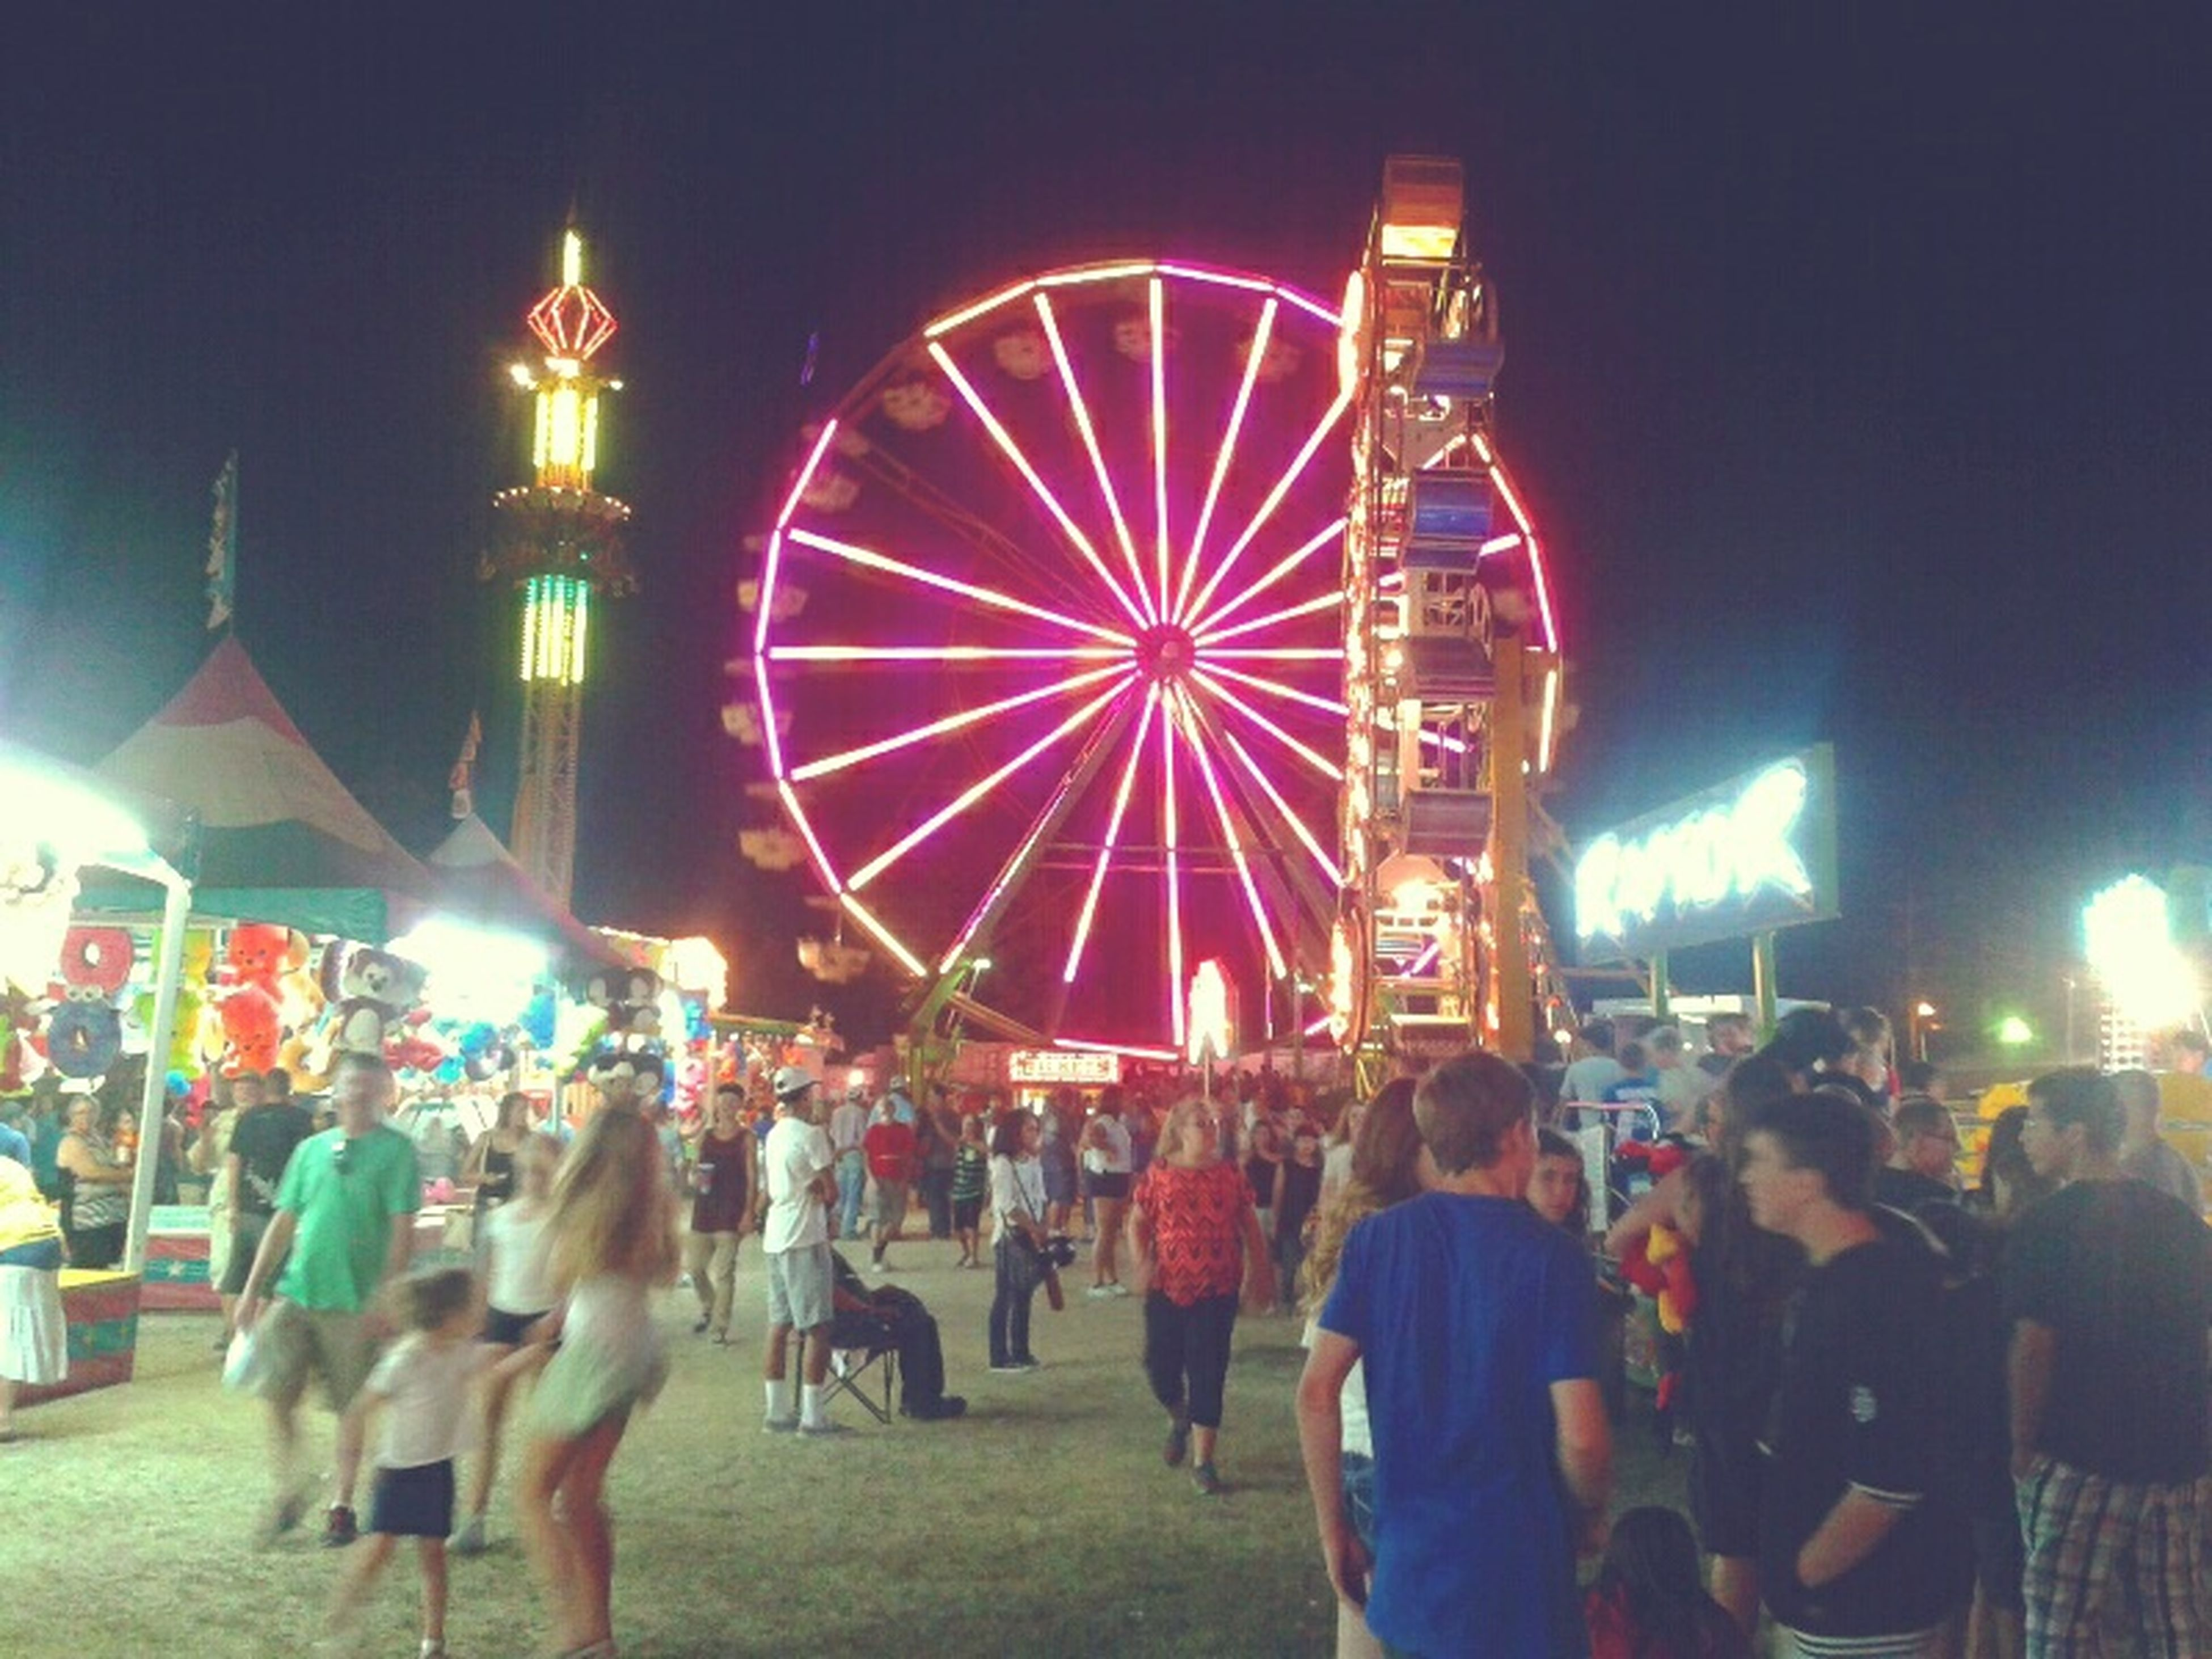 illuminated, night, arts culture and entertainment, amusement park ride, amusement park, large group of people, leisure activity, ferris wheel, architecture, building exterior, built structure, celebration, sky, person, lifestyles, men, multi colored, city, incidental people